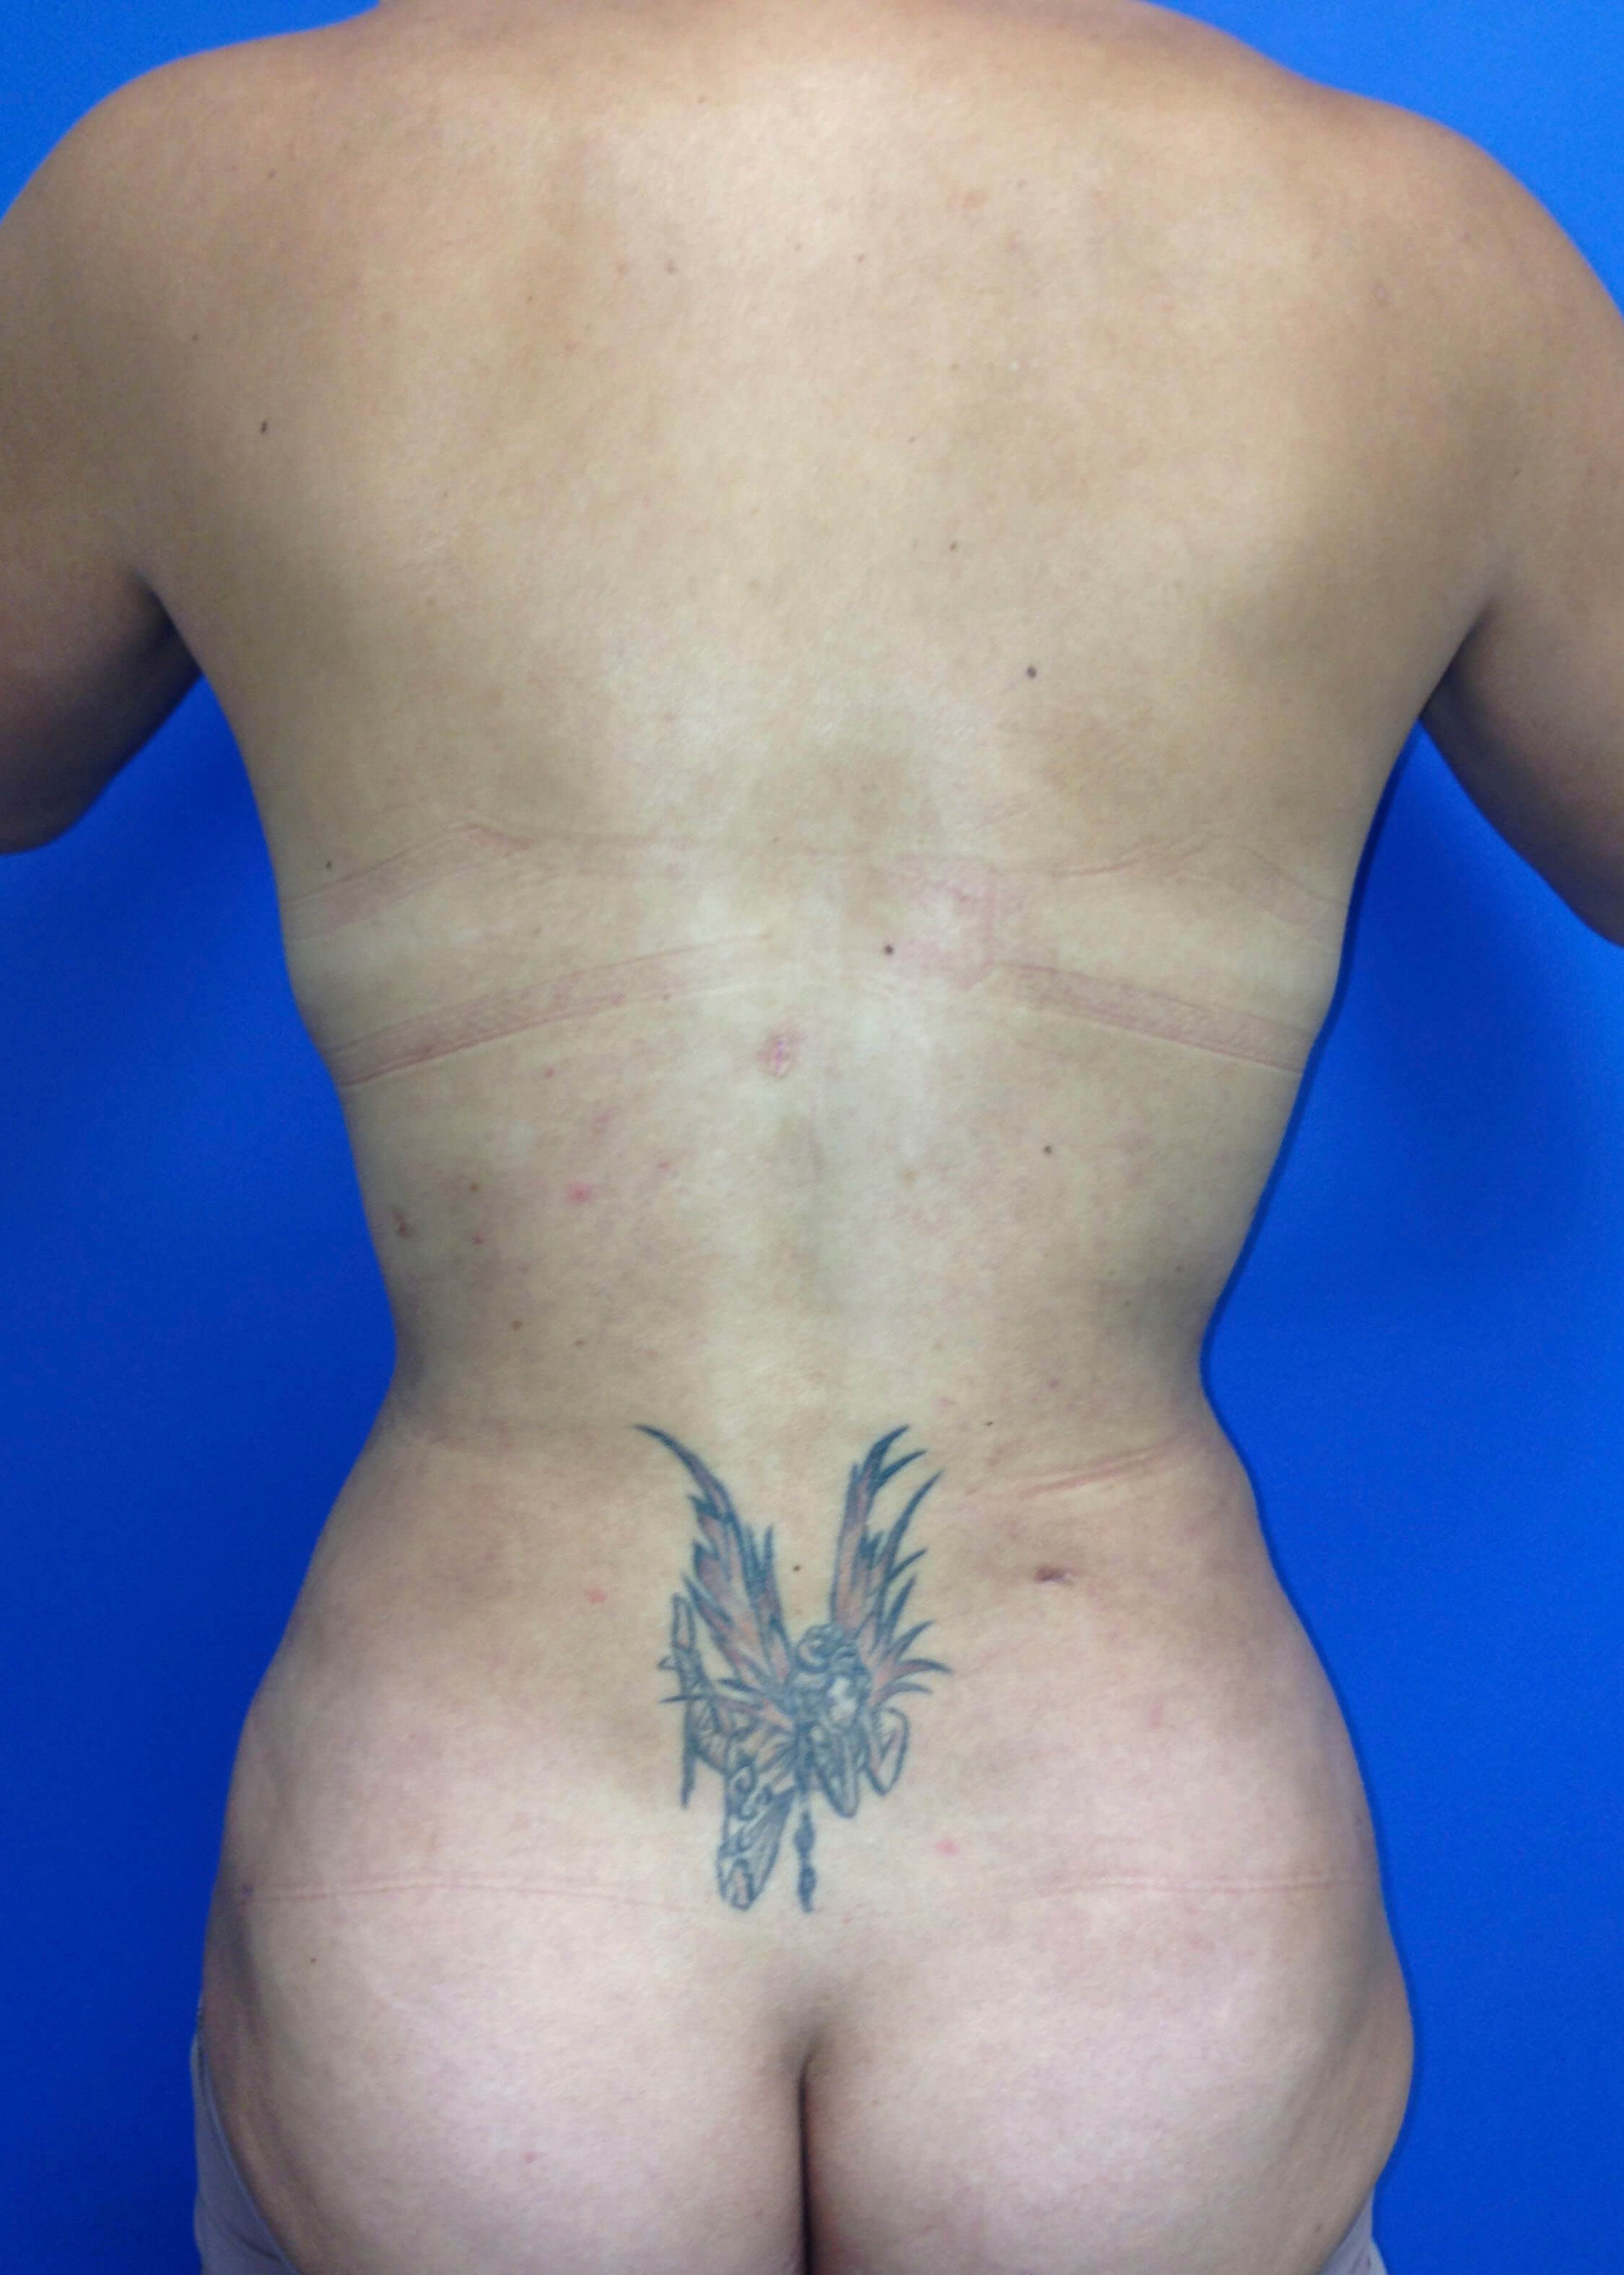 After Tummy Tuck Back View - Back View